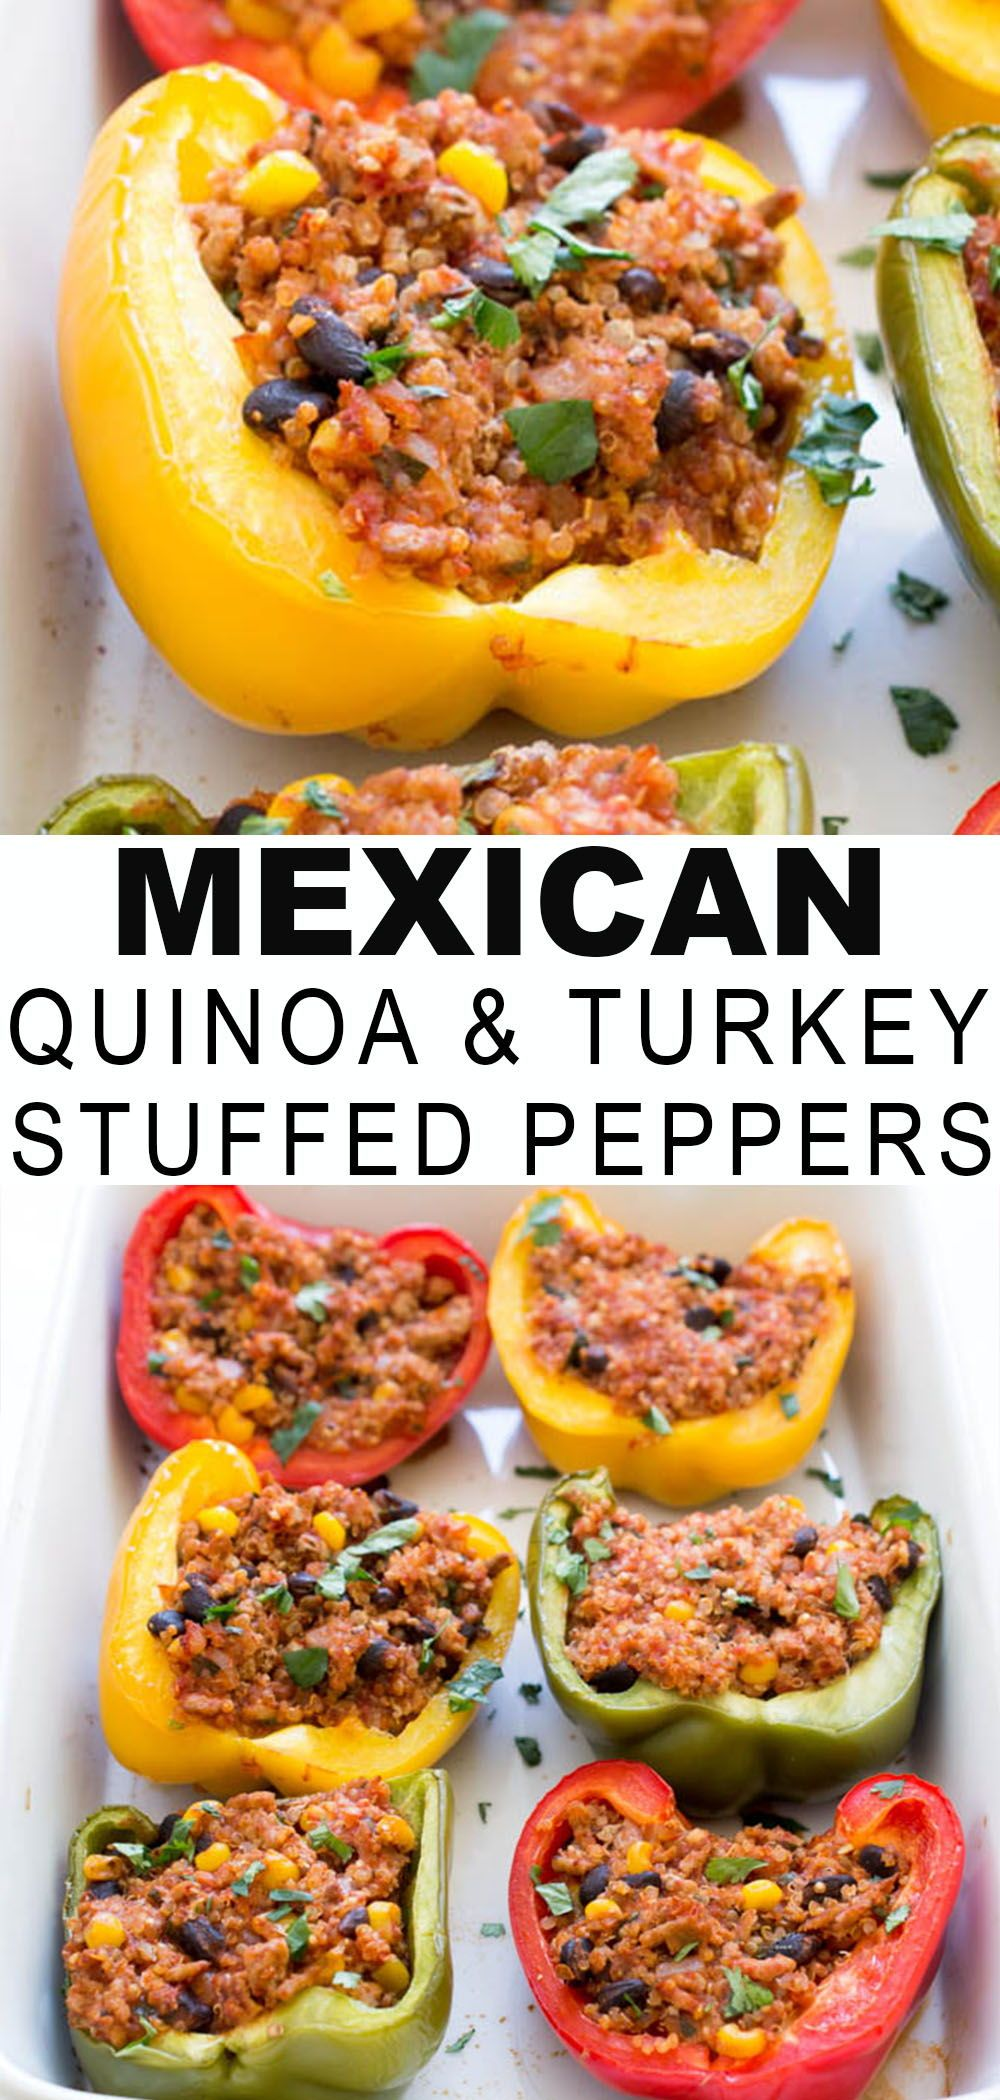 Healthy Mexican Turkey And Quinoa Stuffed Peppers Chef Savvy Recipe Stuffed Peppers Quinoa Stuffed Peppers Stuffed Peppers Turkey